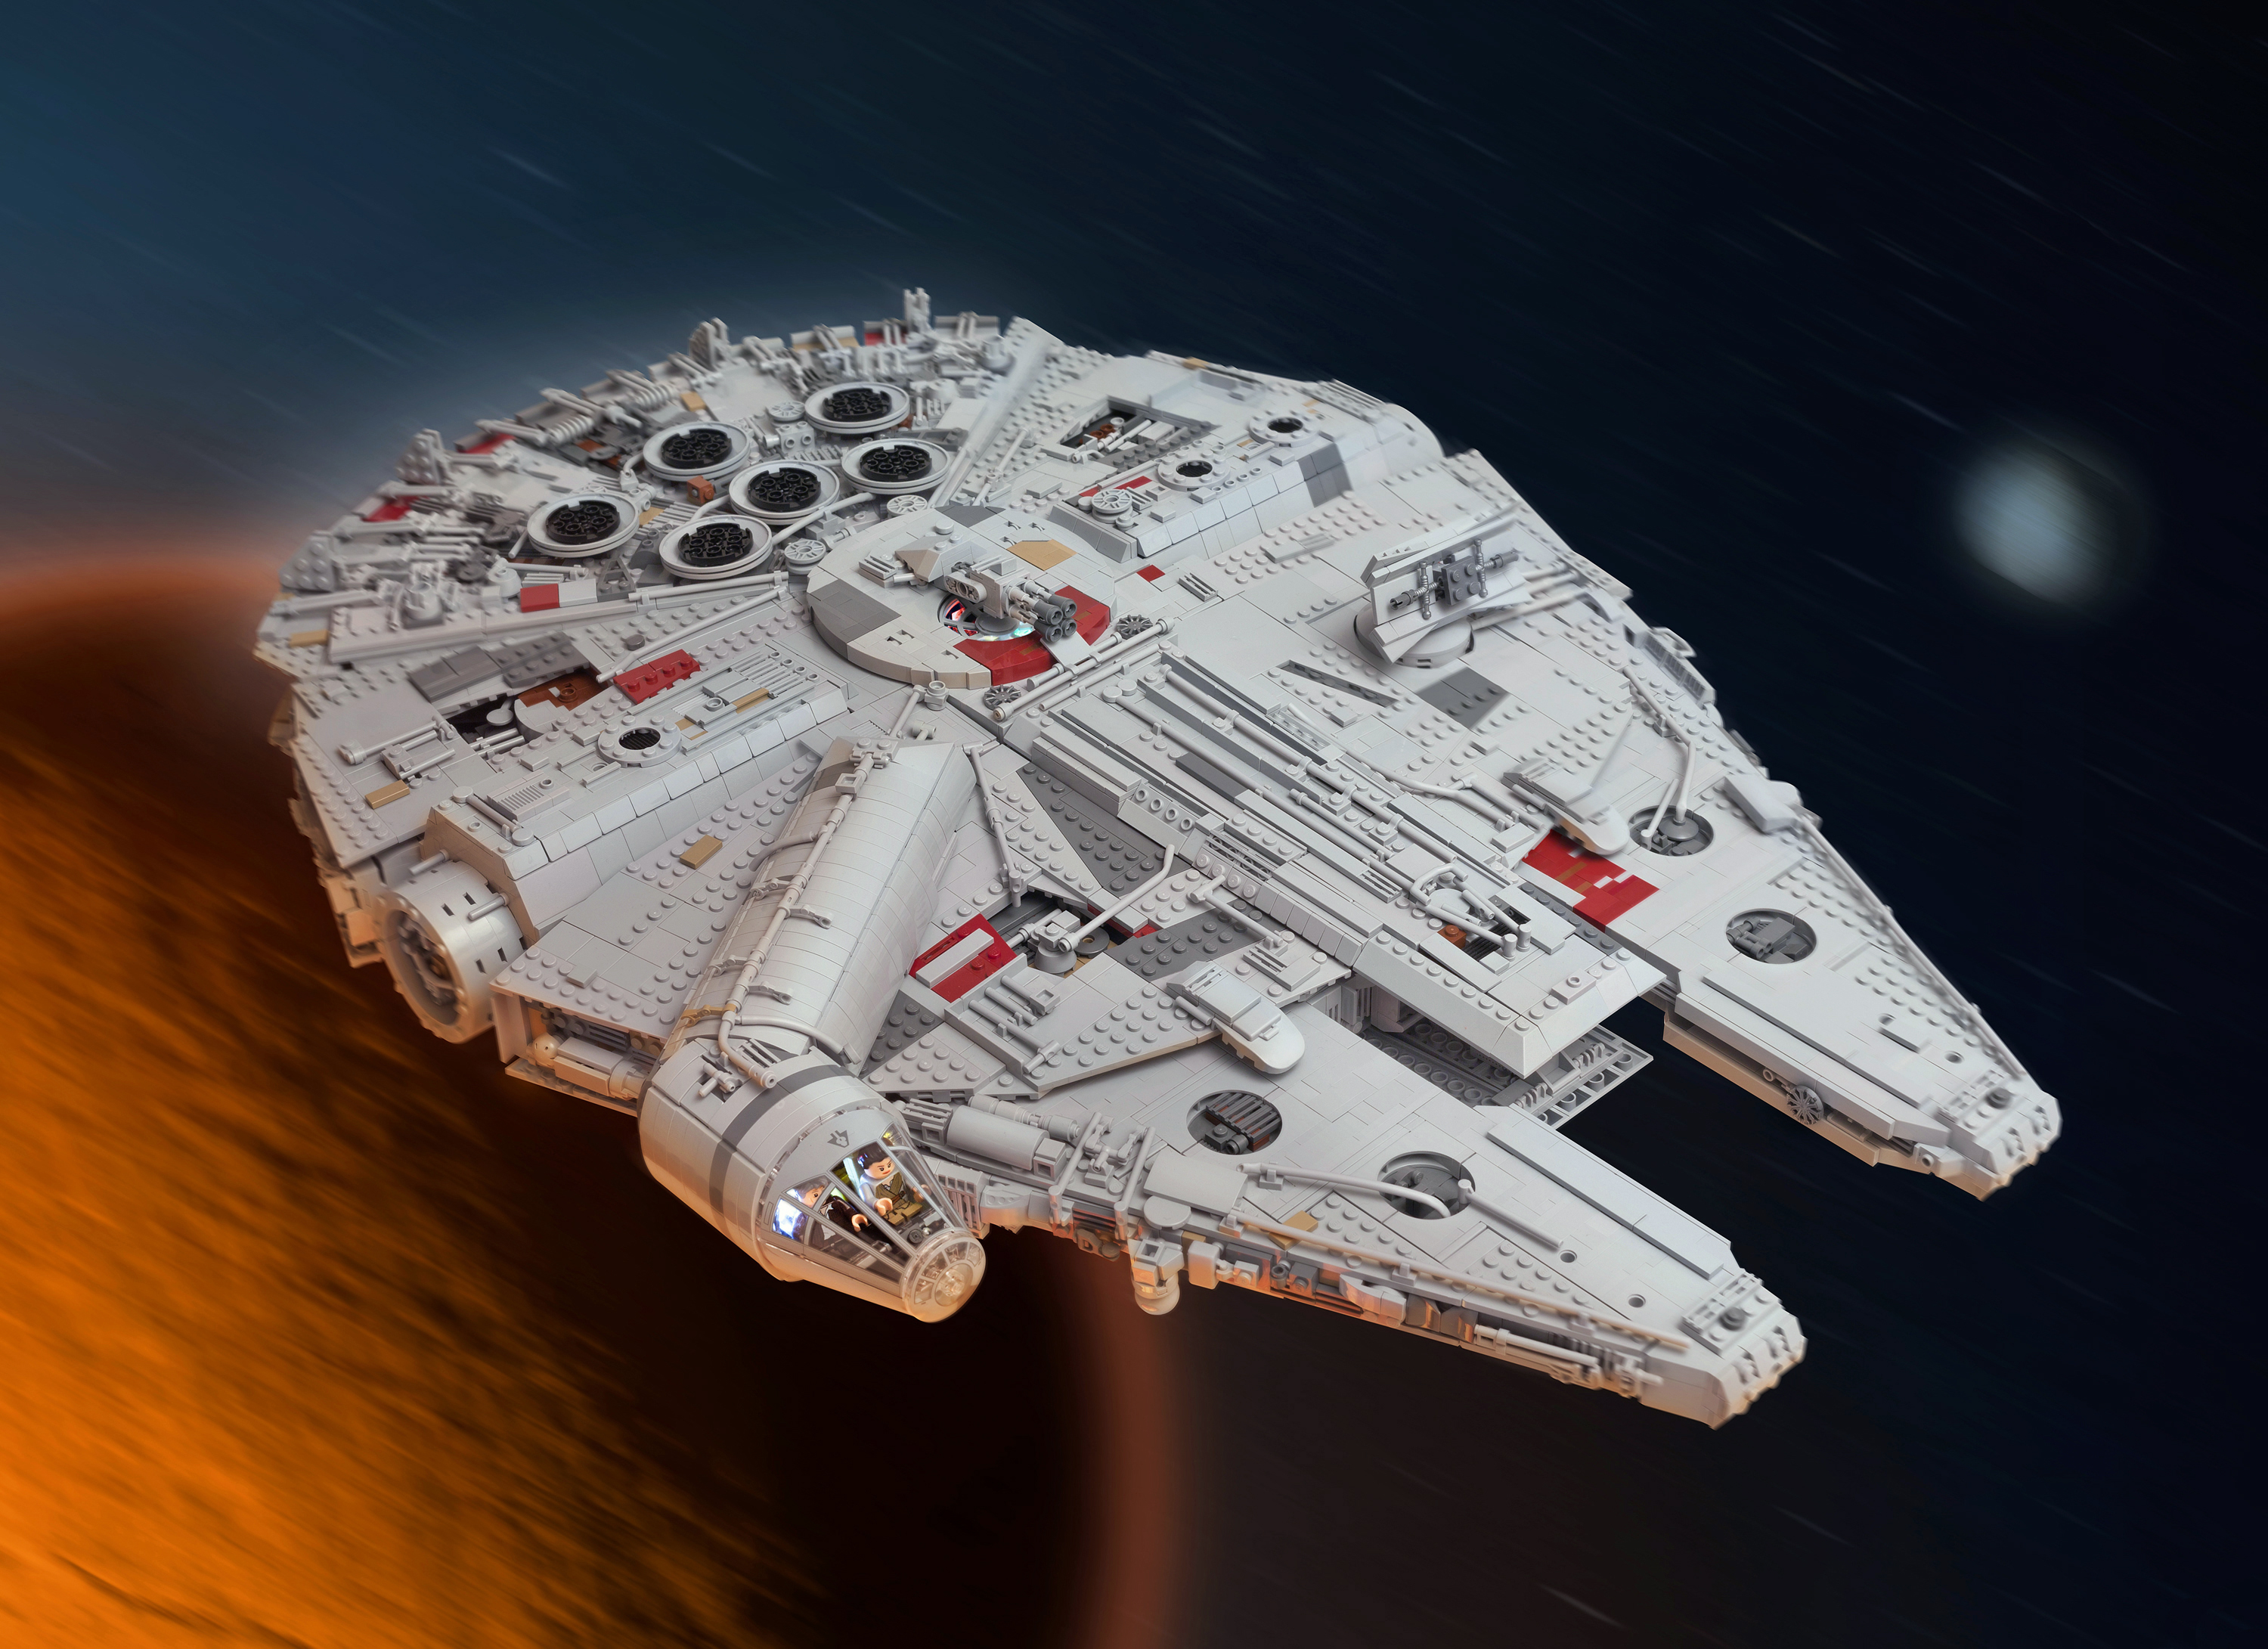 Star Wars fan creates 7500-piece Lego Millennium Falcon